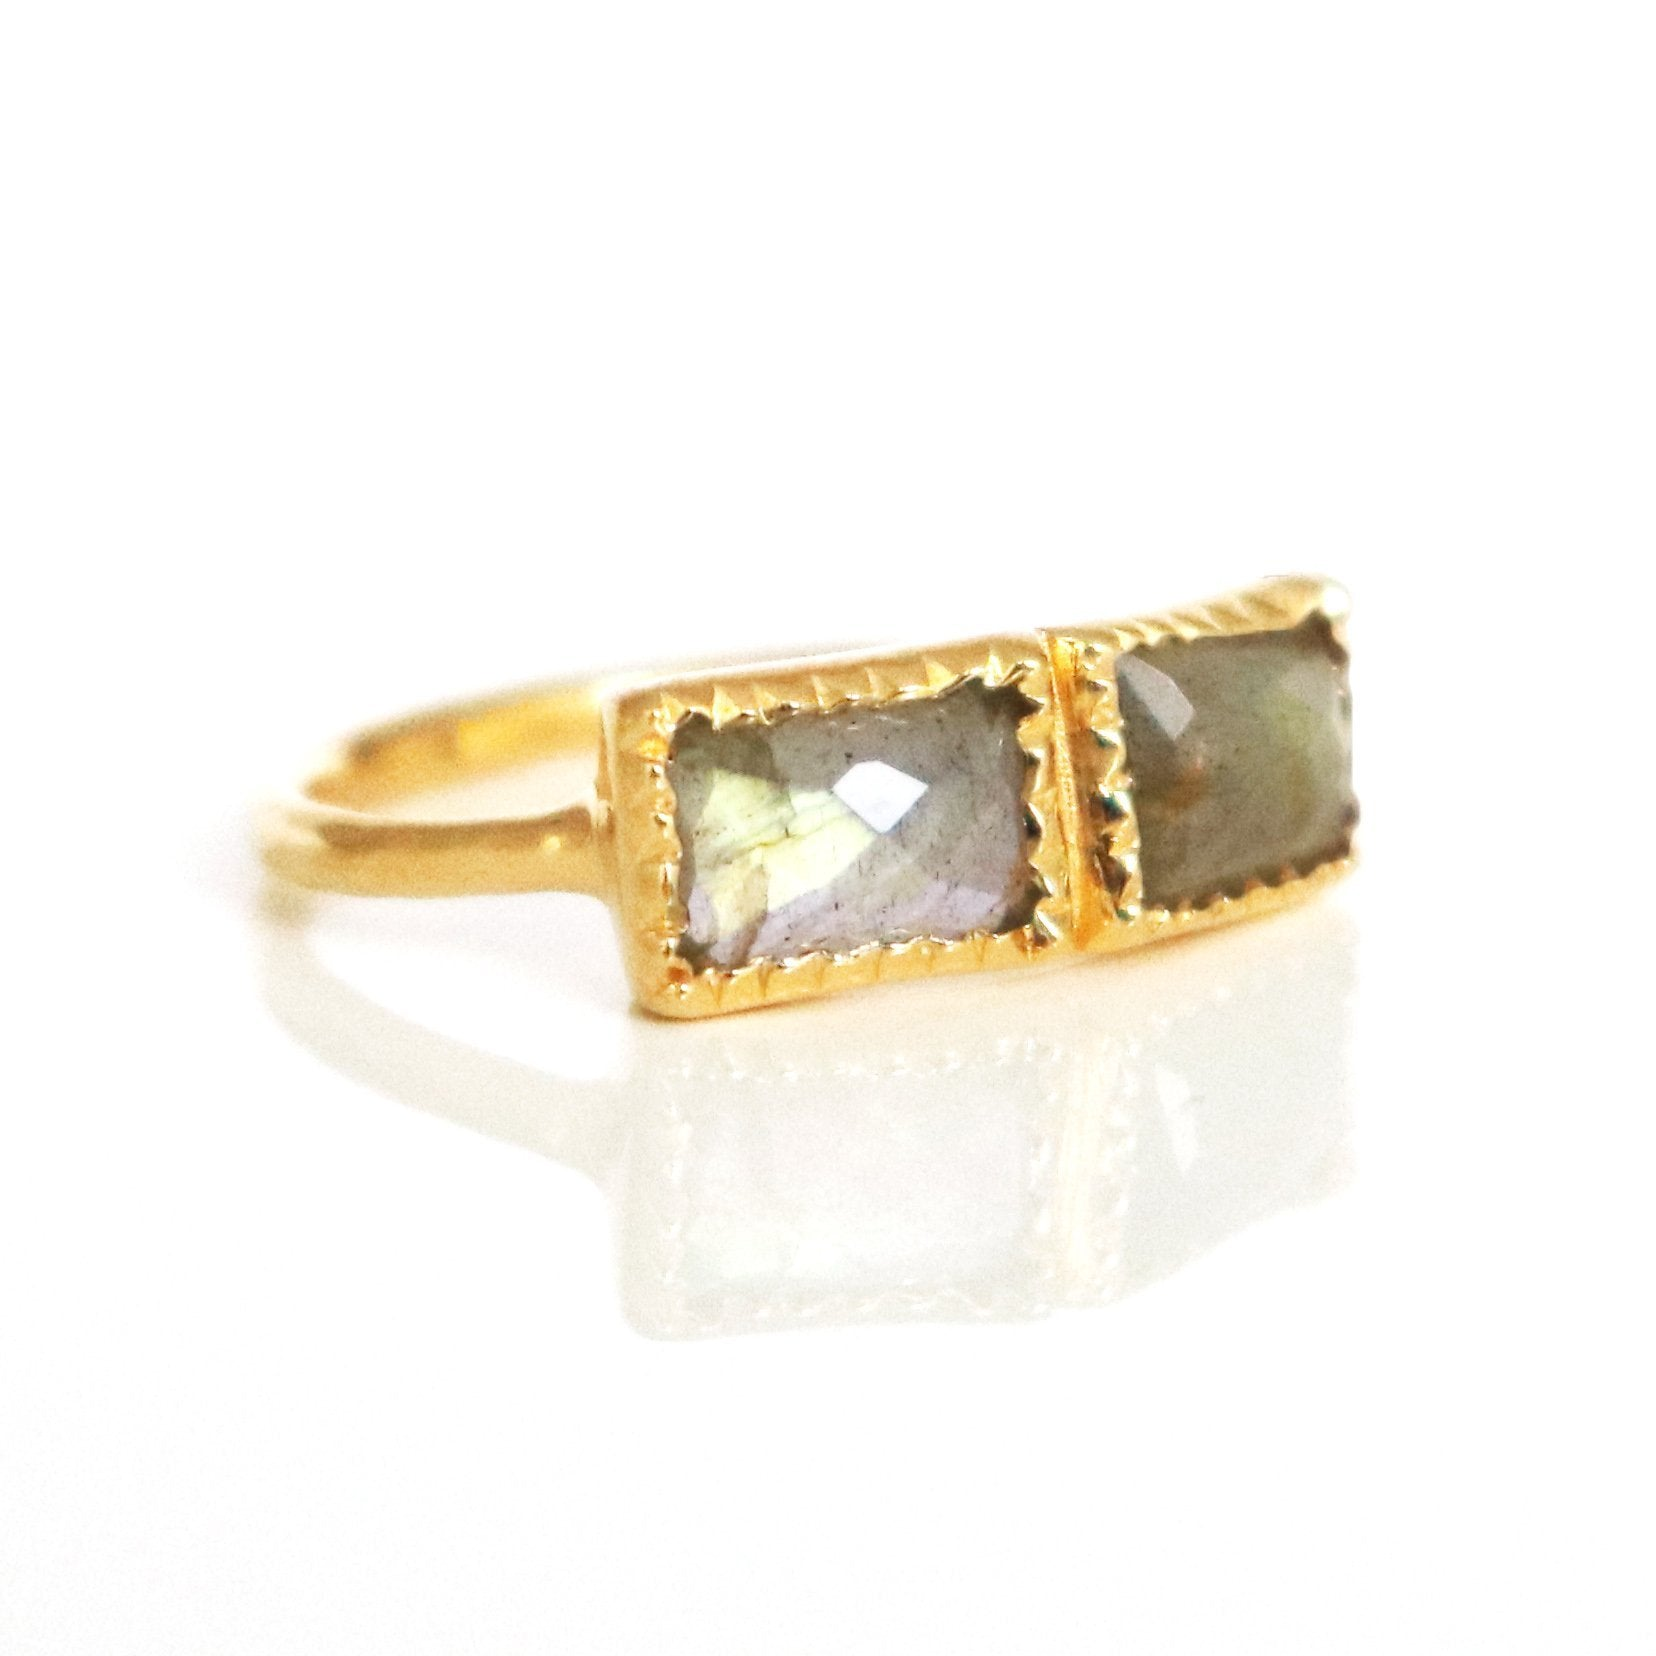 UNITY RING LABRADORITE & GOLD - SO PRETTY CARA COTTER